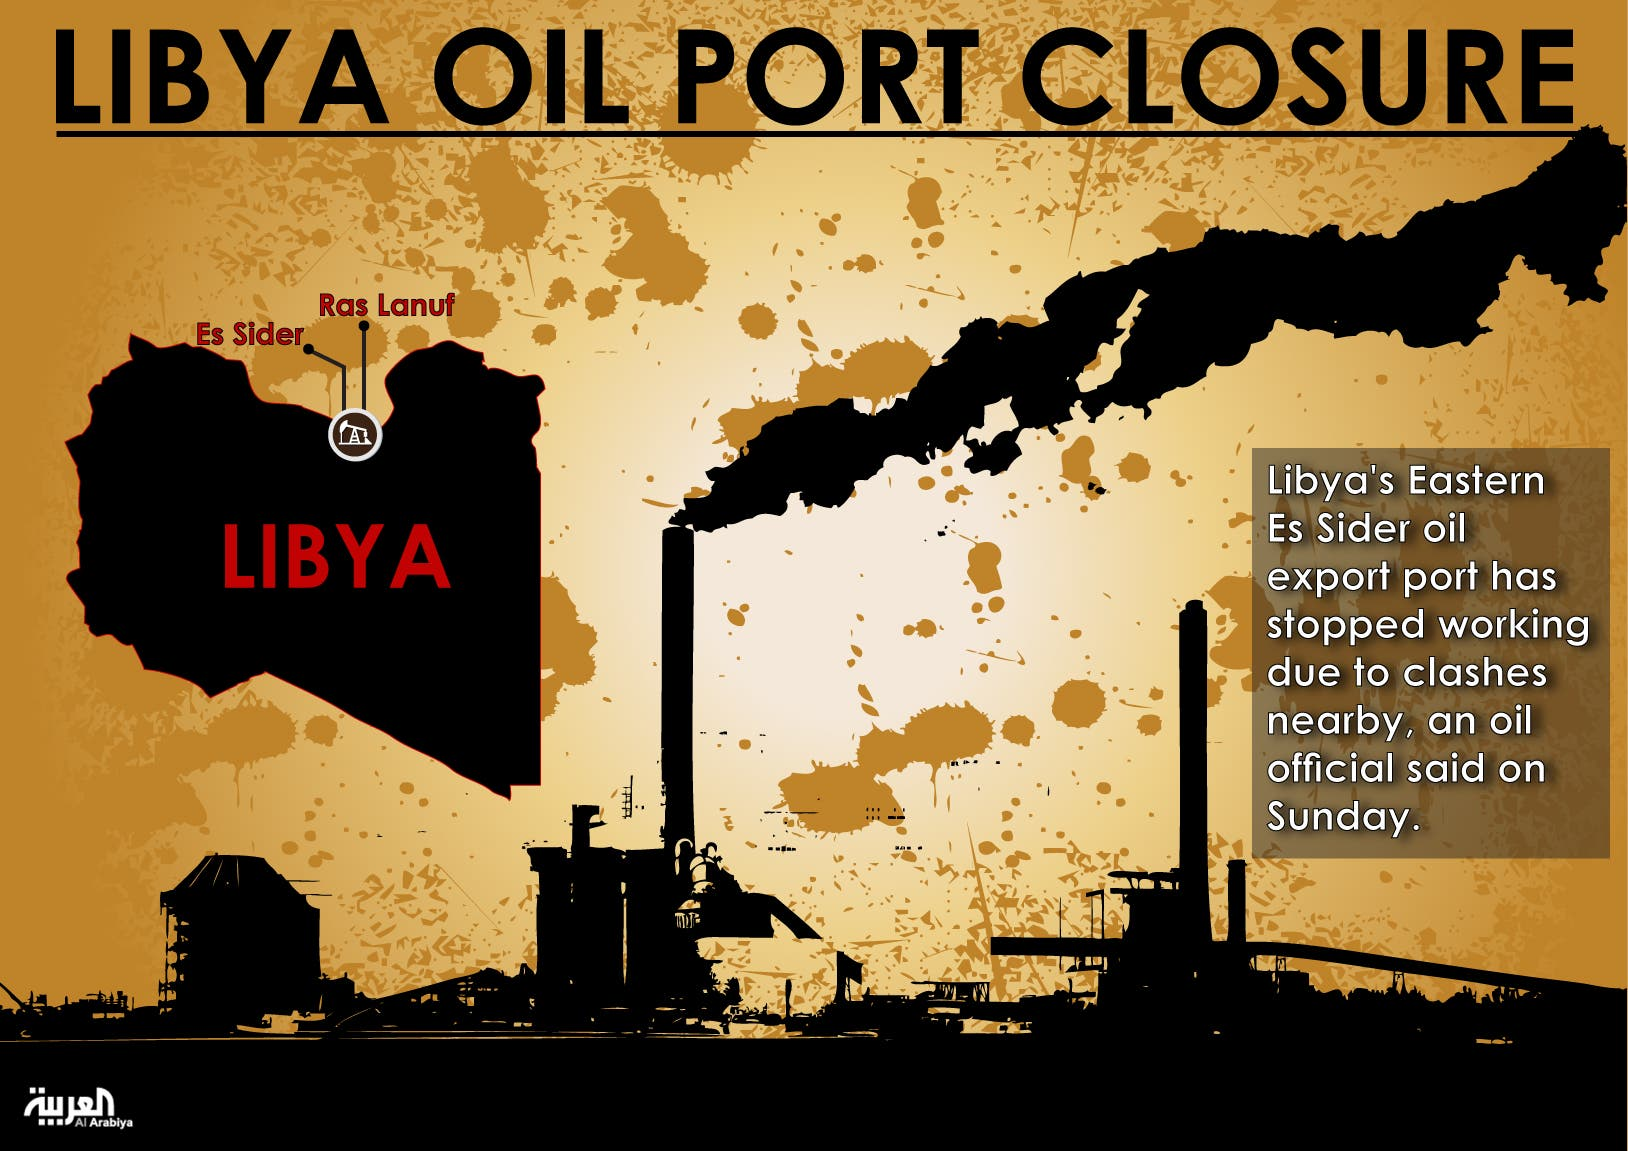 Infographic: Libya oil port closure